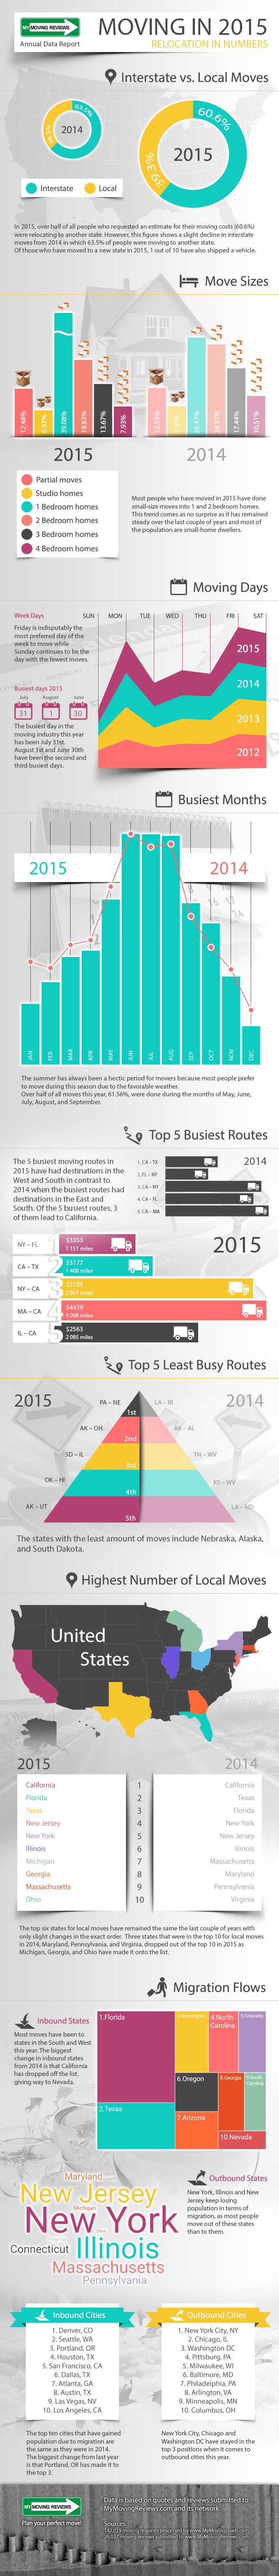 Moving Trends: 2015 Annual Relocation Data Survey